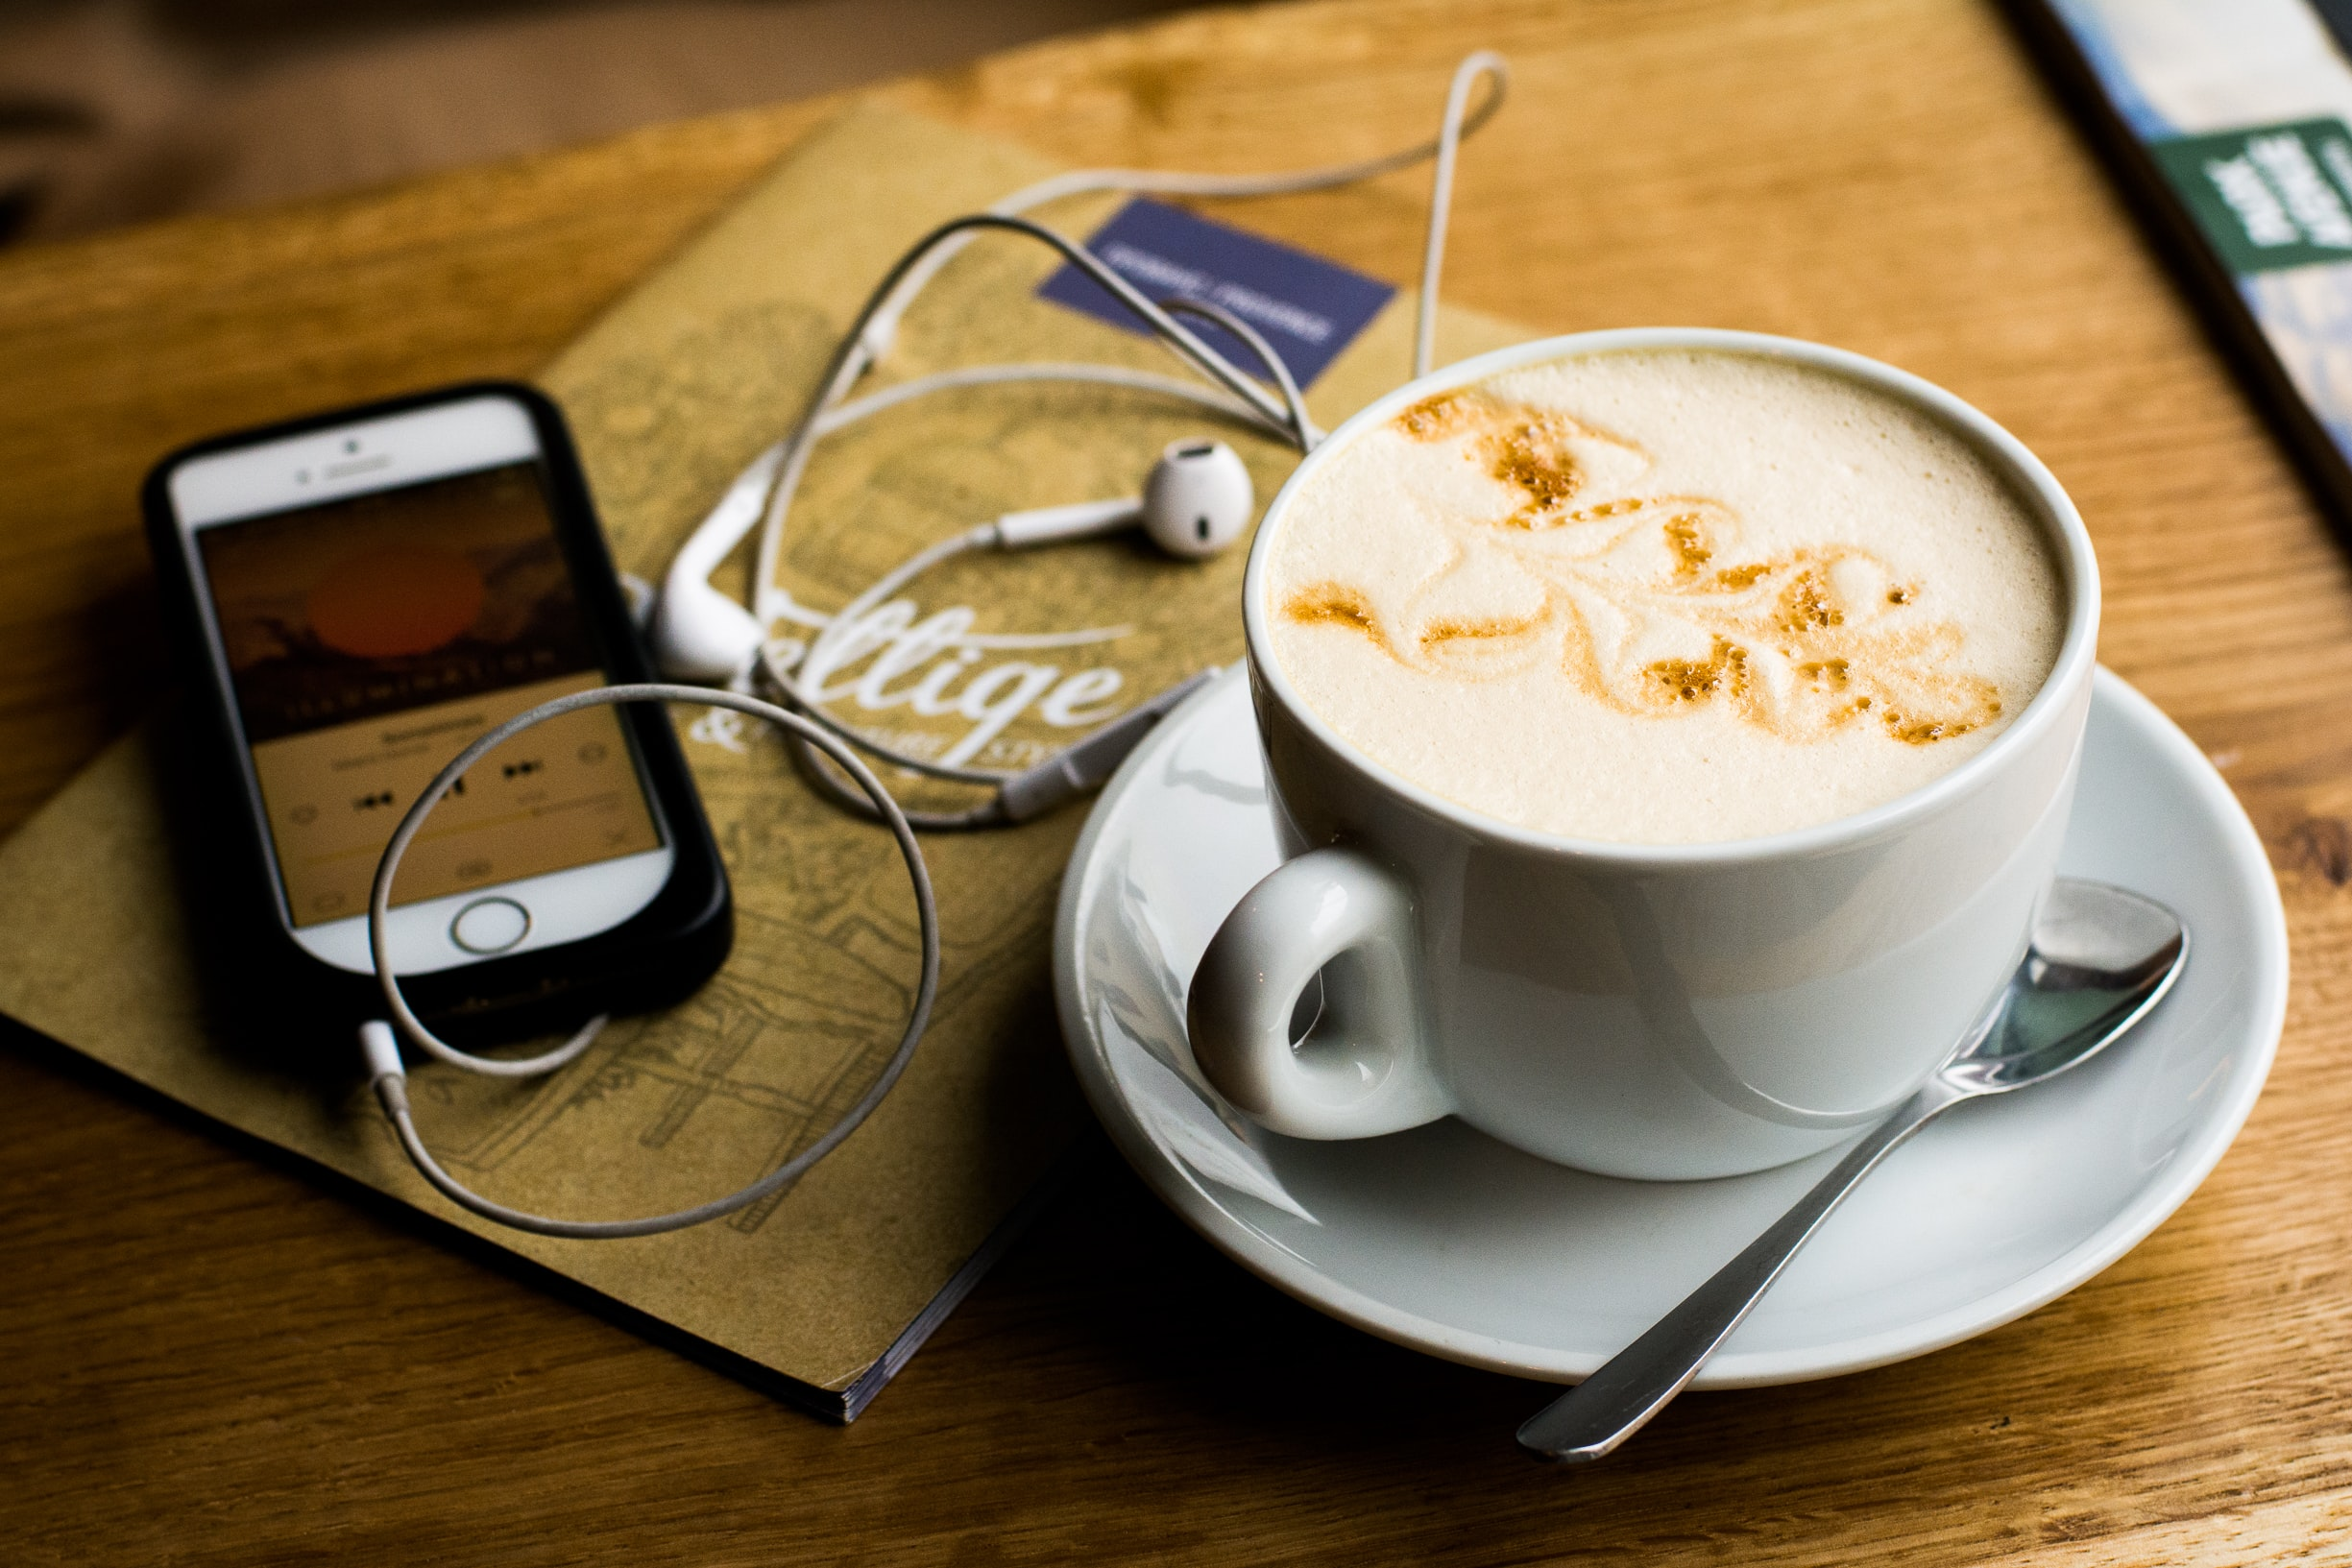 phone with media player and headphones, notebook, and latte on table